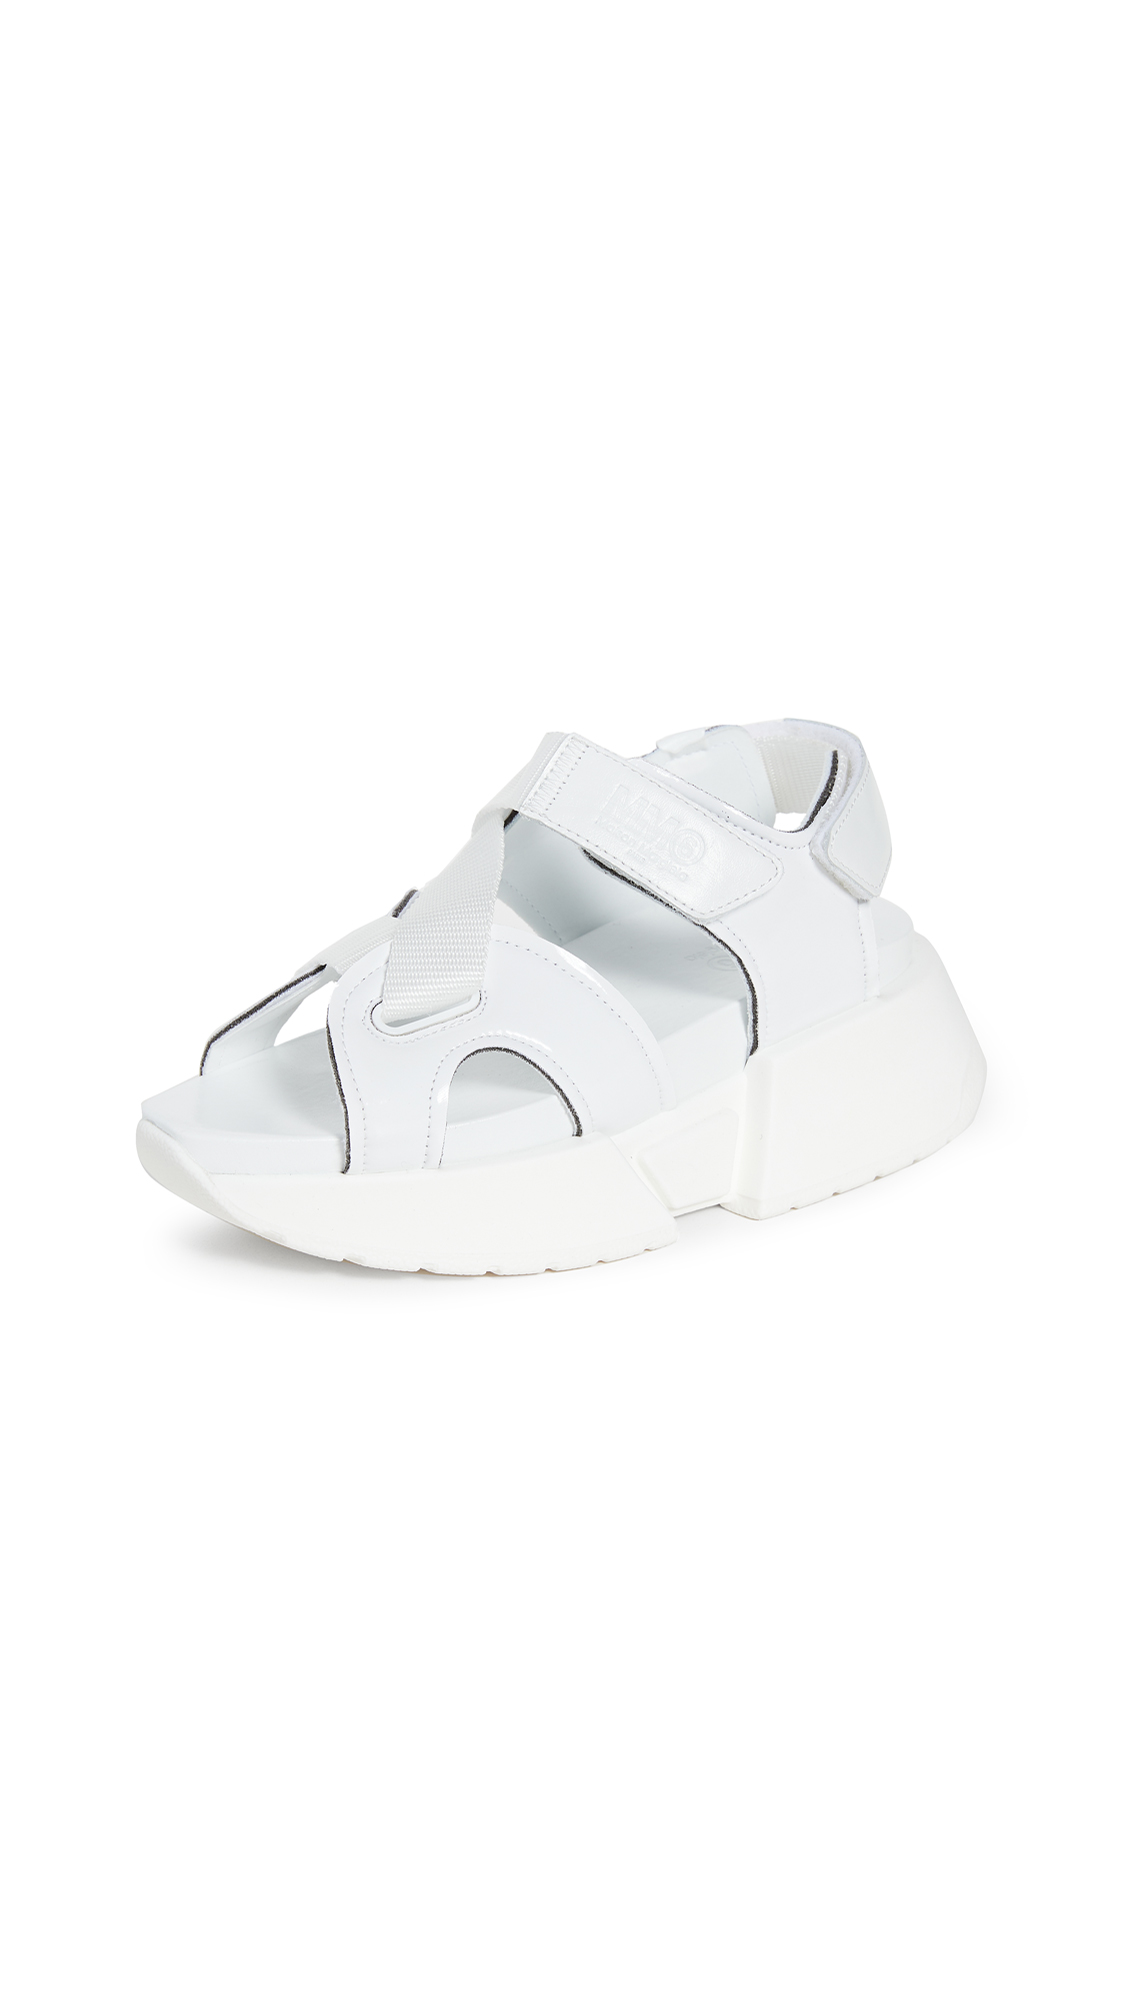 MM6 Maison Margiela Strap Sandals - 40% Off Sale